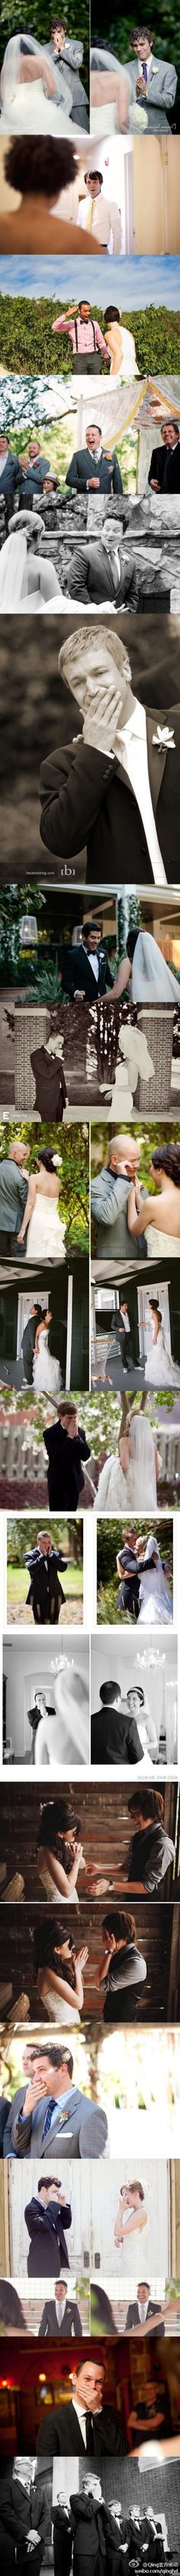 Pictures of the grooms reactions. I like the back to back.